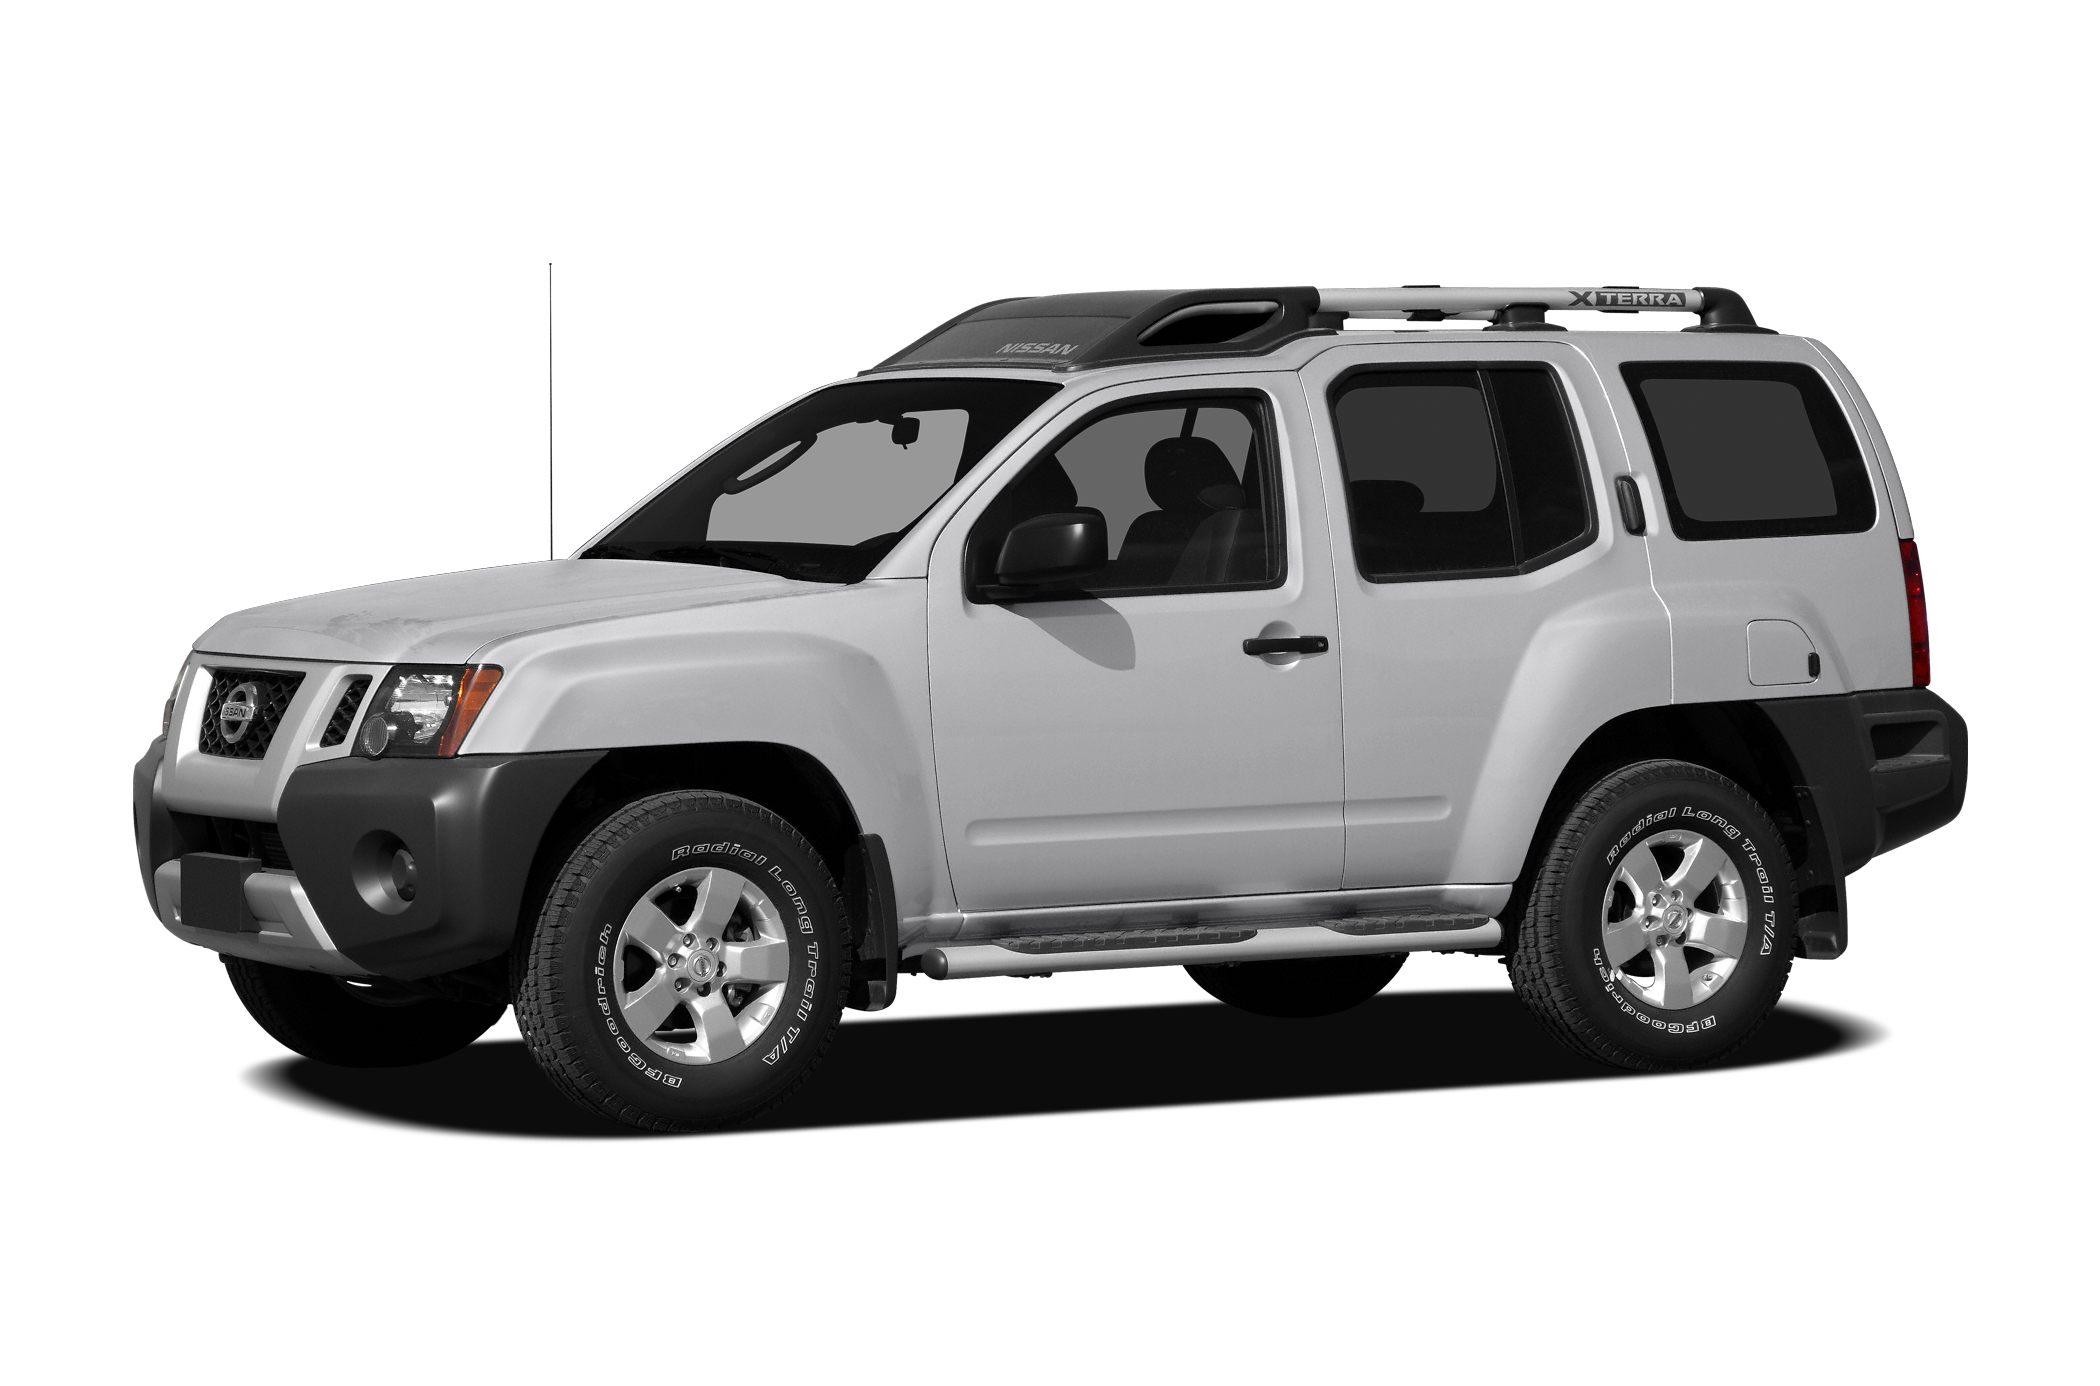 2011 Nissan Xterra S SUV for sale in Clarksburg for $19,950 with 69,710 miles